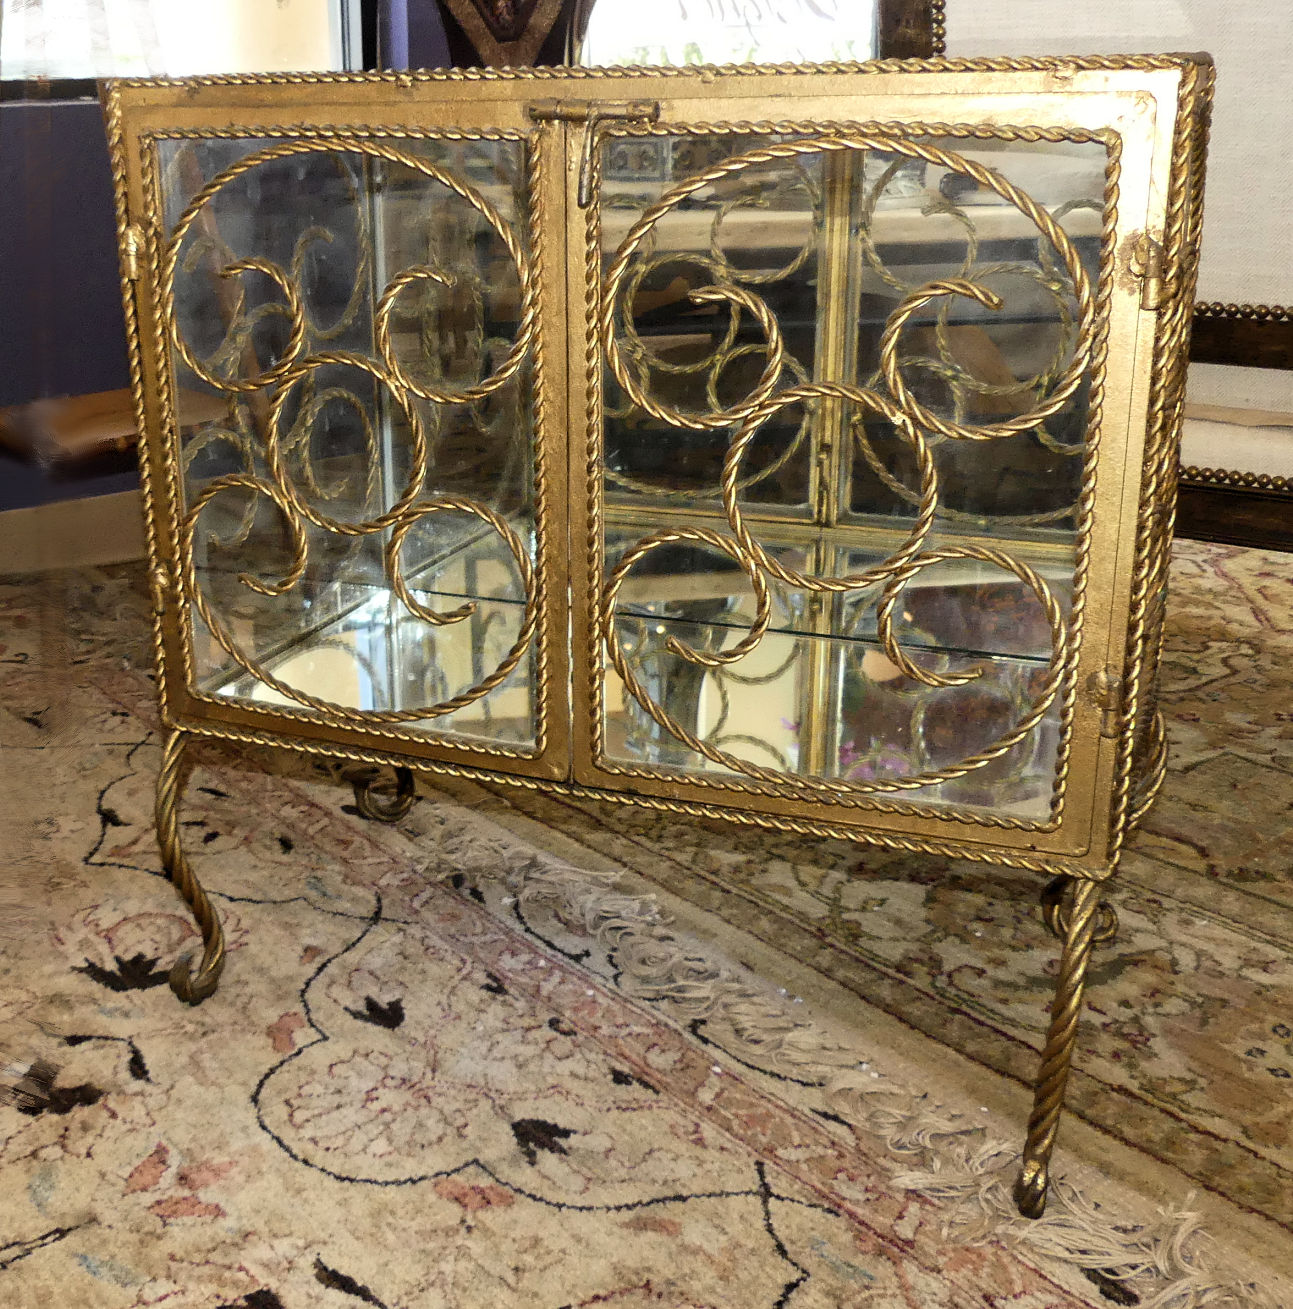 SOLD Vintage Iron Display Cabinet, Table or Nightstand